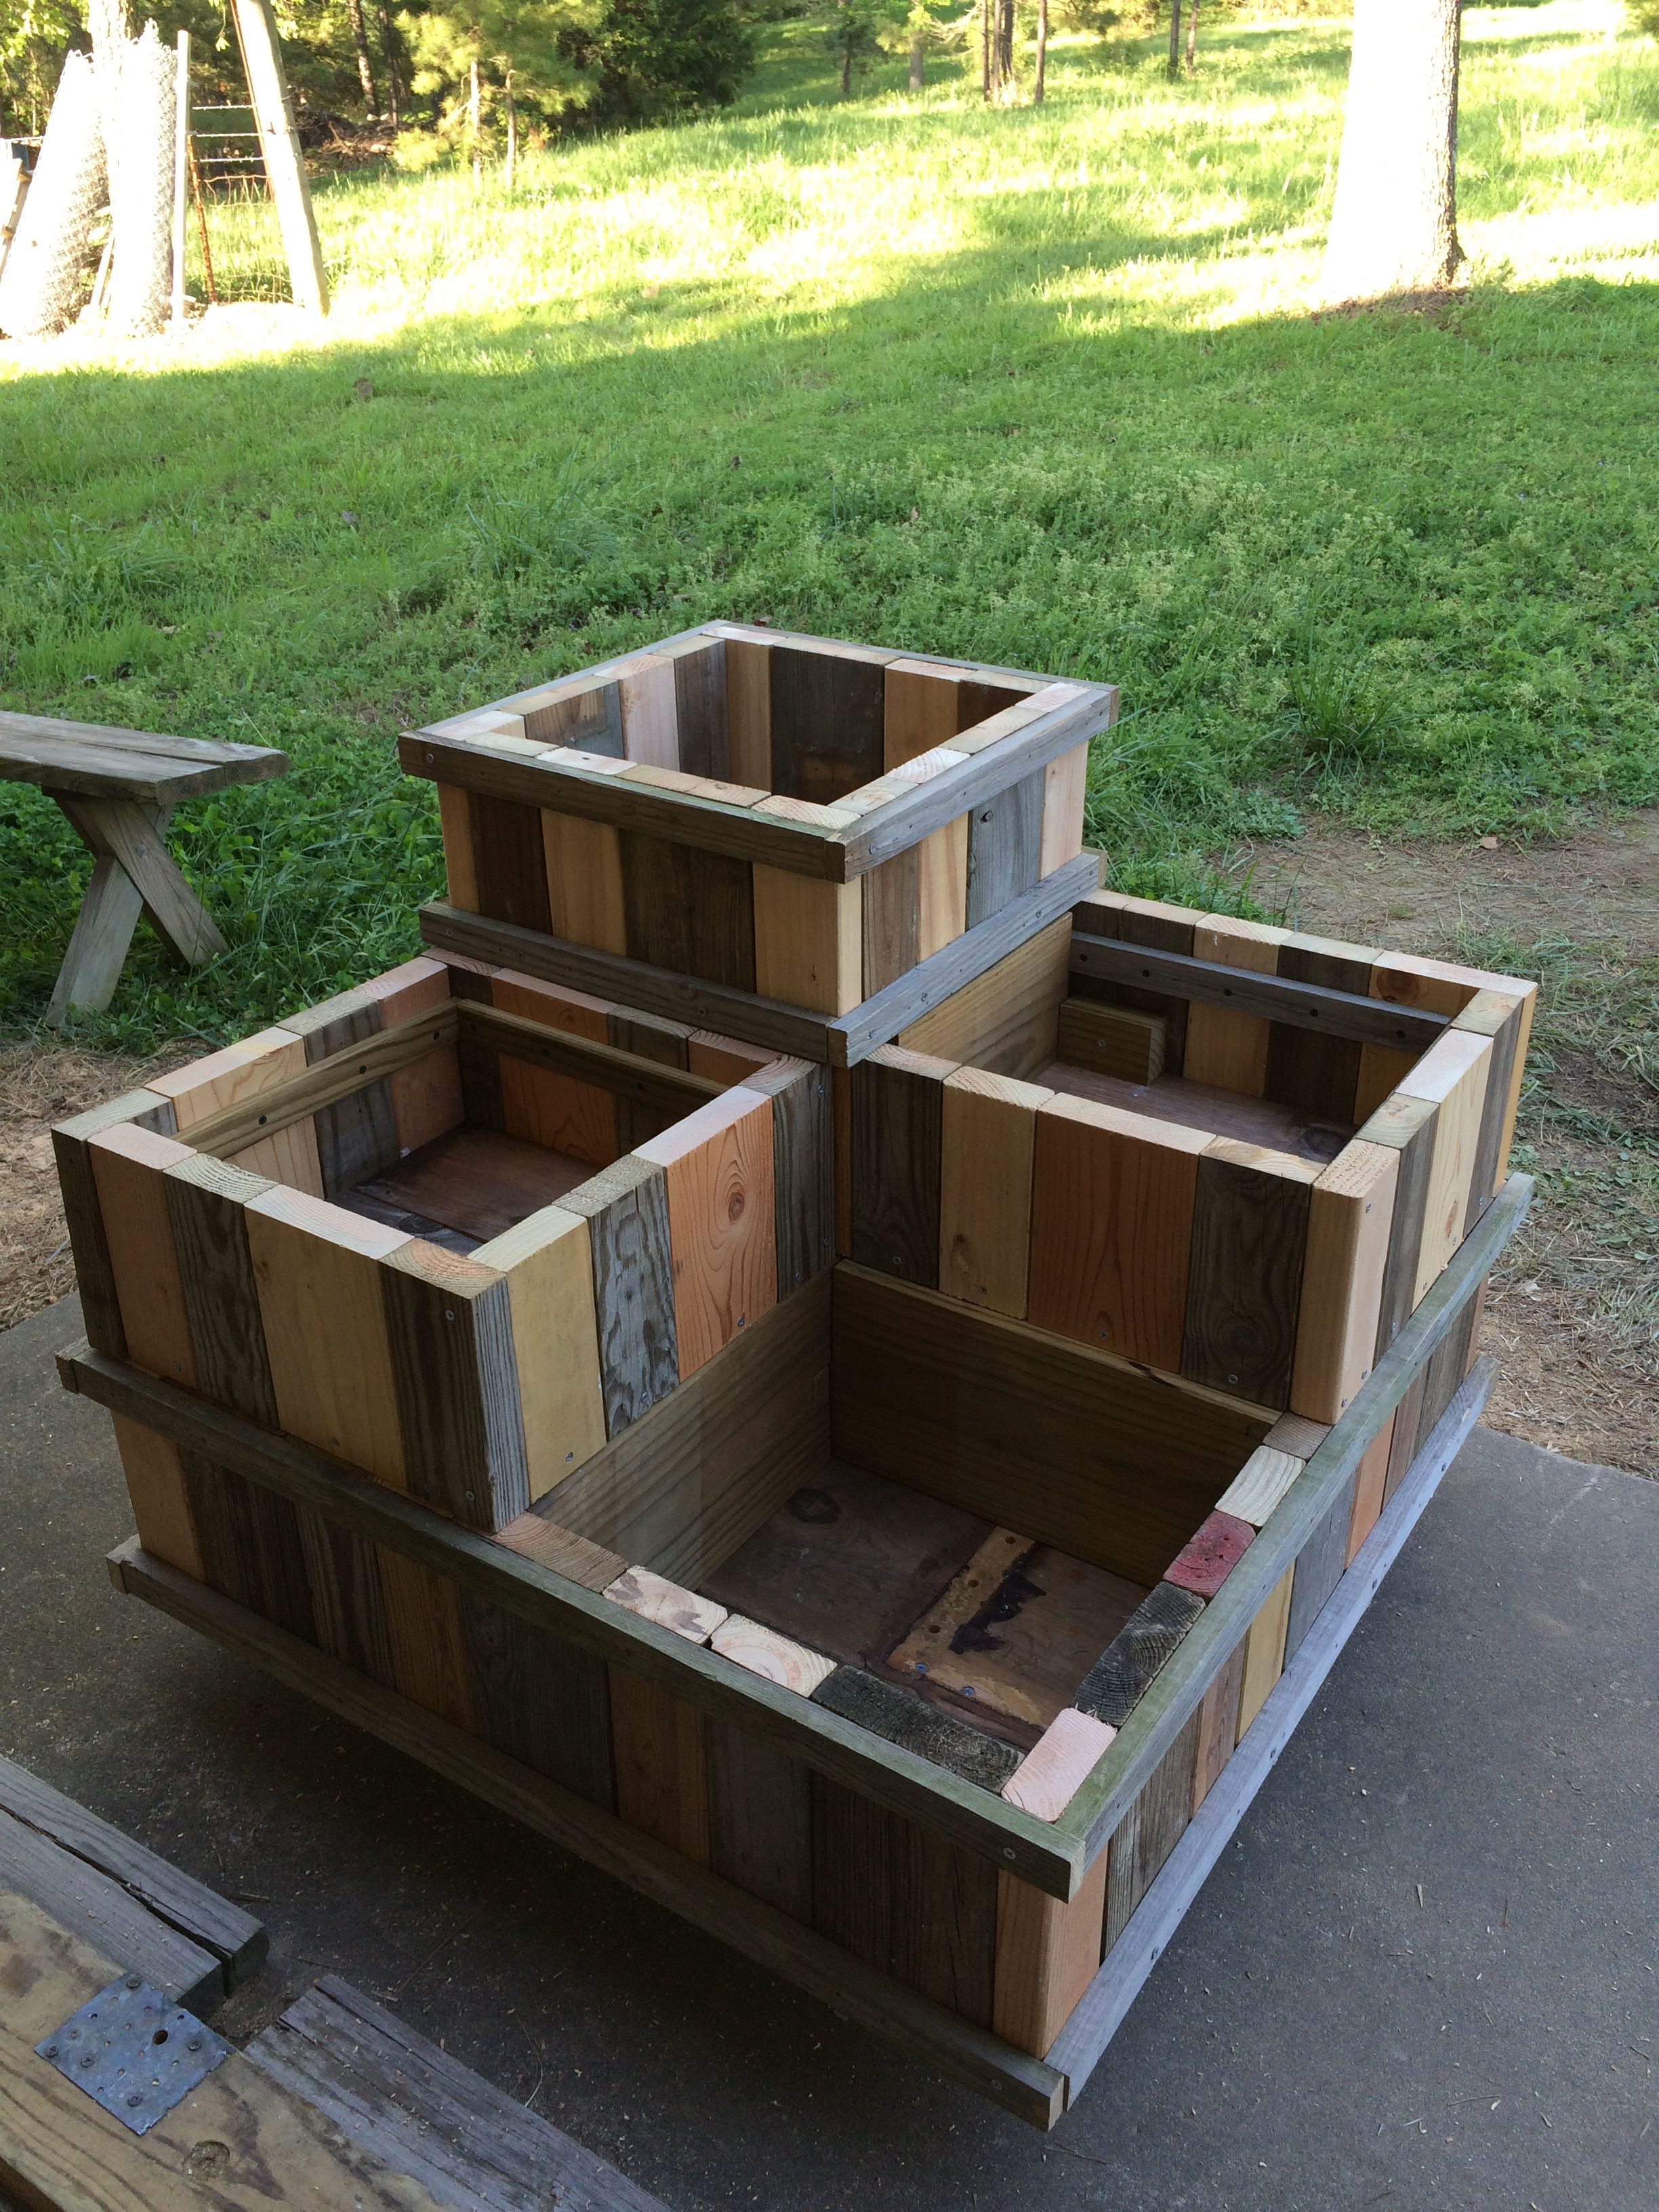 Threetiered planter box made from 100 salvaged materials